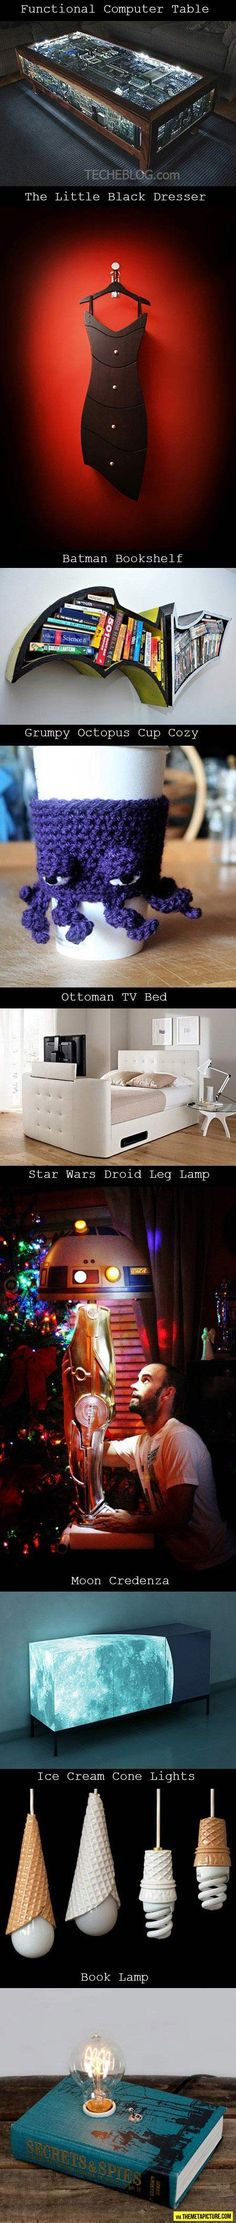 For the geek home…